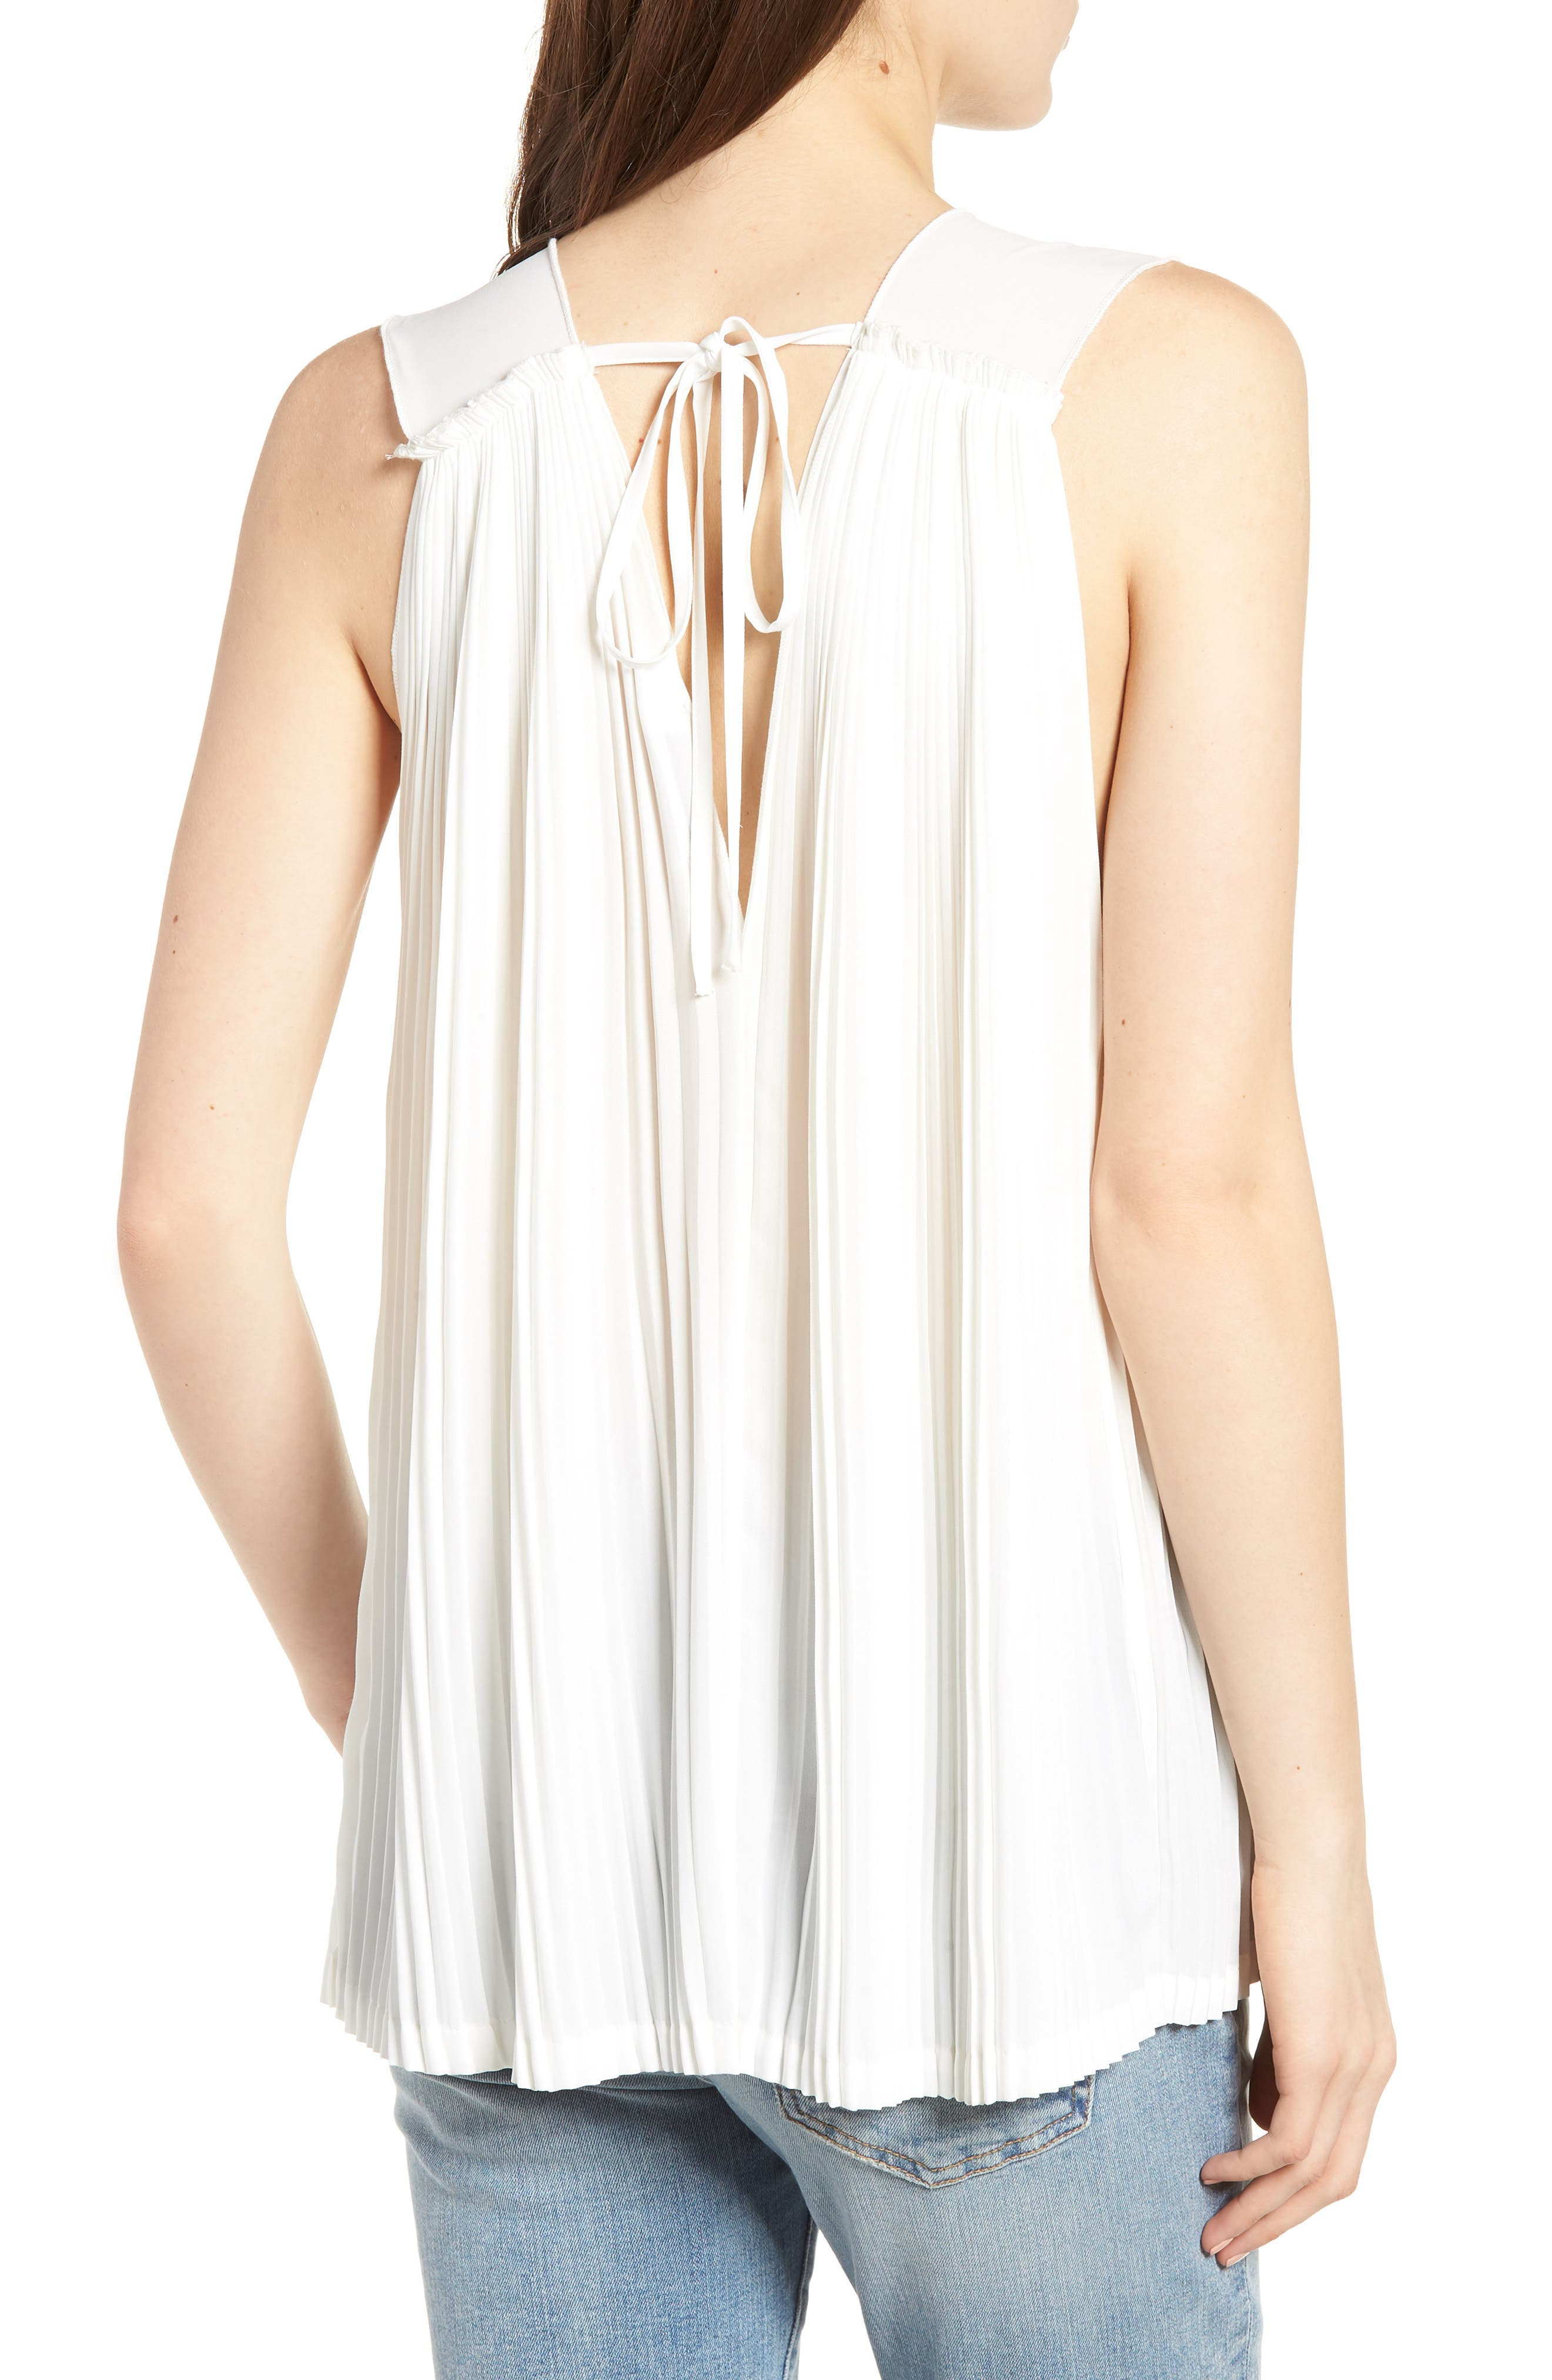 Bishop + Young Pleat Blouse,                             Alternate thumbnail 2, color,                             WHITE